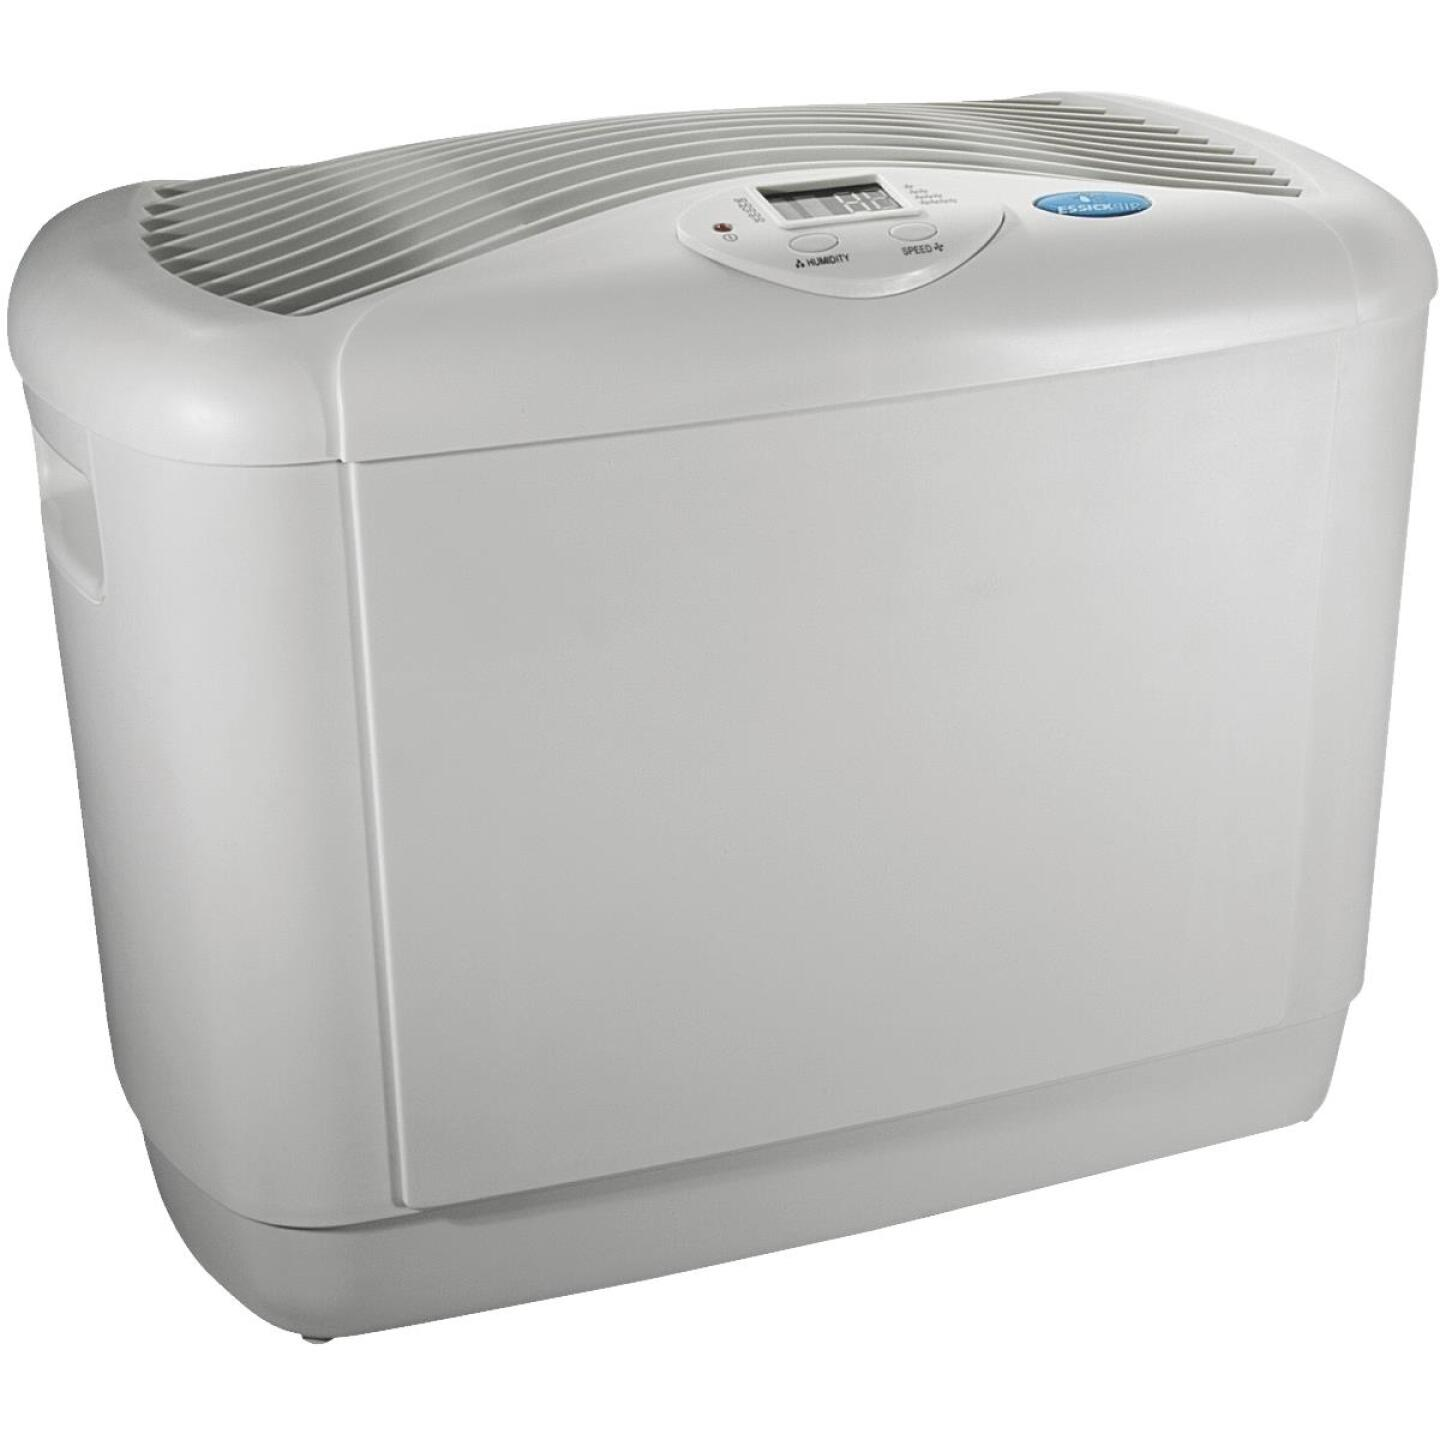 Essick Air Aircare 3 Gal. Capacity 1100 Sq. Ft. Mini Console Humidifier Image 1